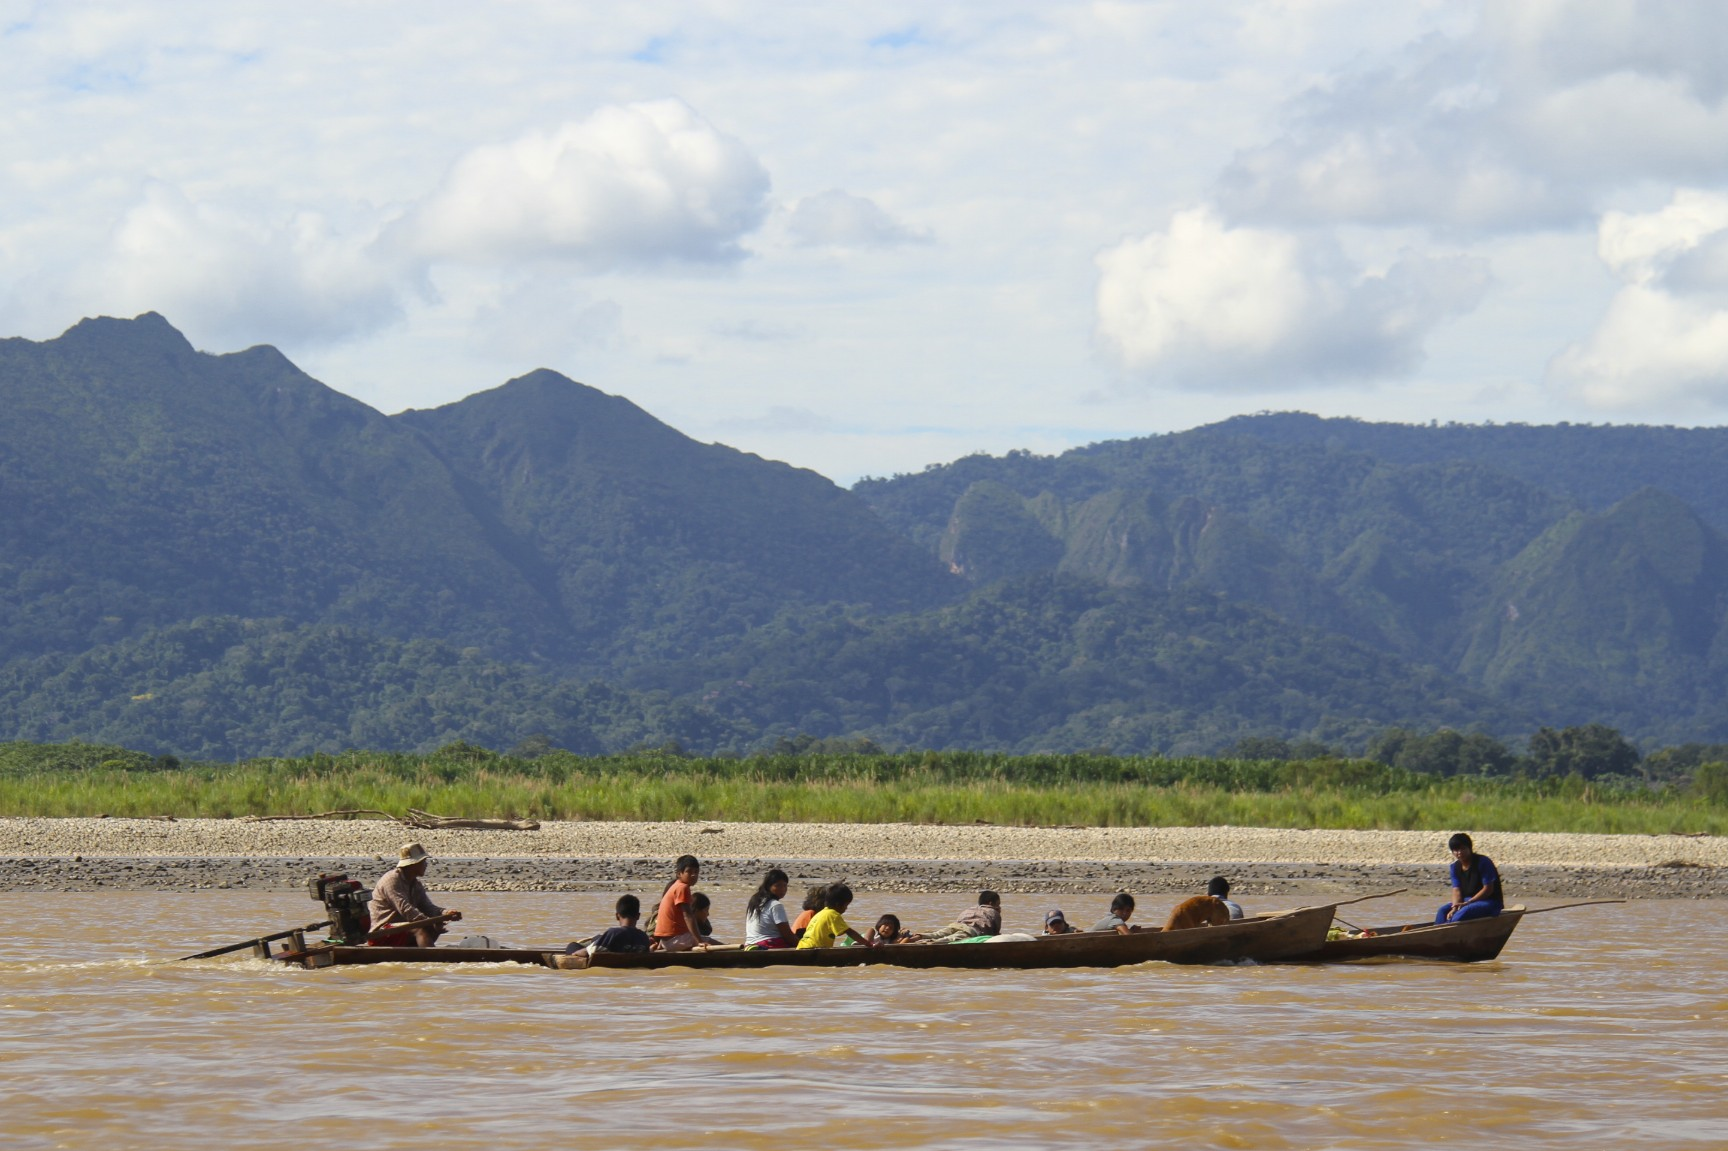 Canoe and people, Rio Beni, Amazon, Bolivia